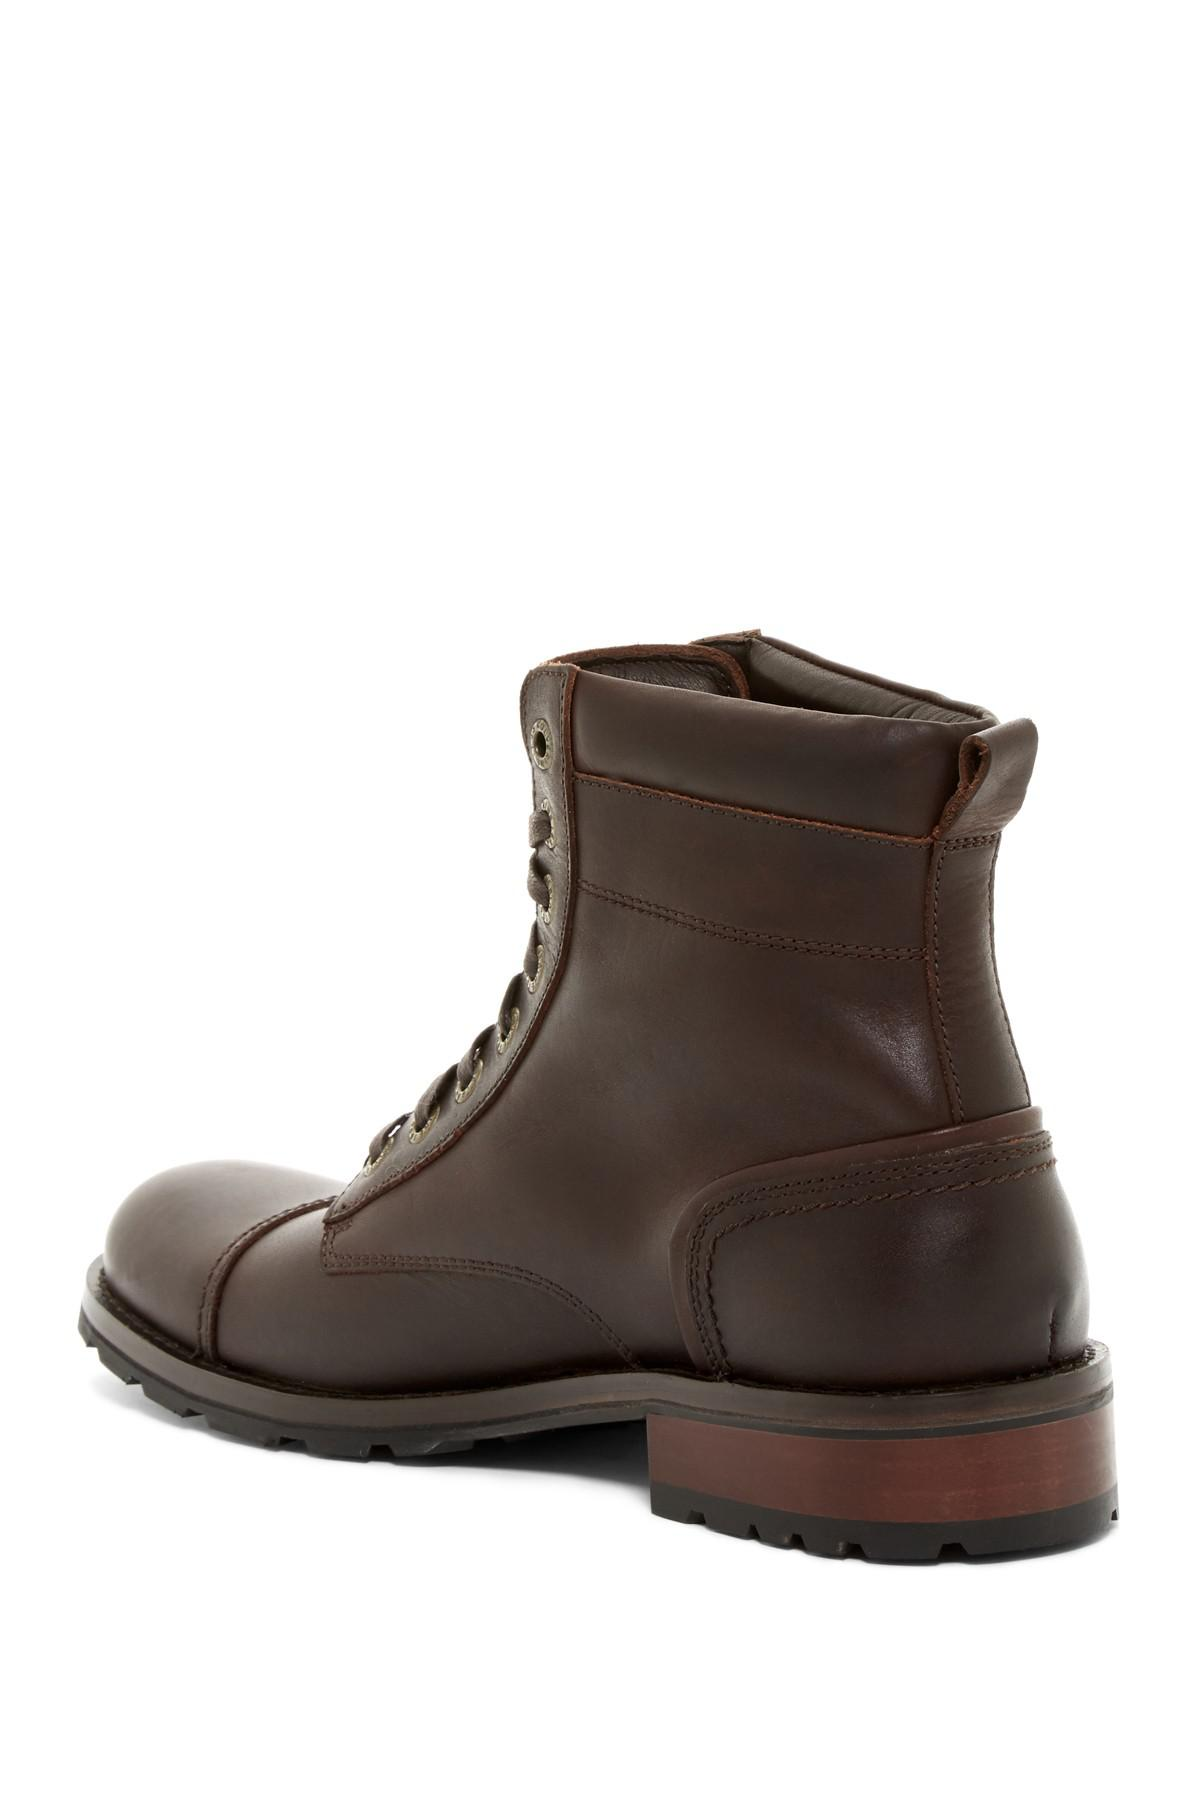 069af41b51a Wolverine Brown Reese Combat Boot for men